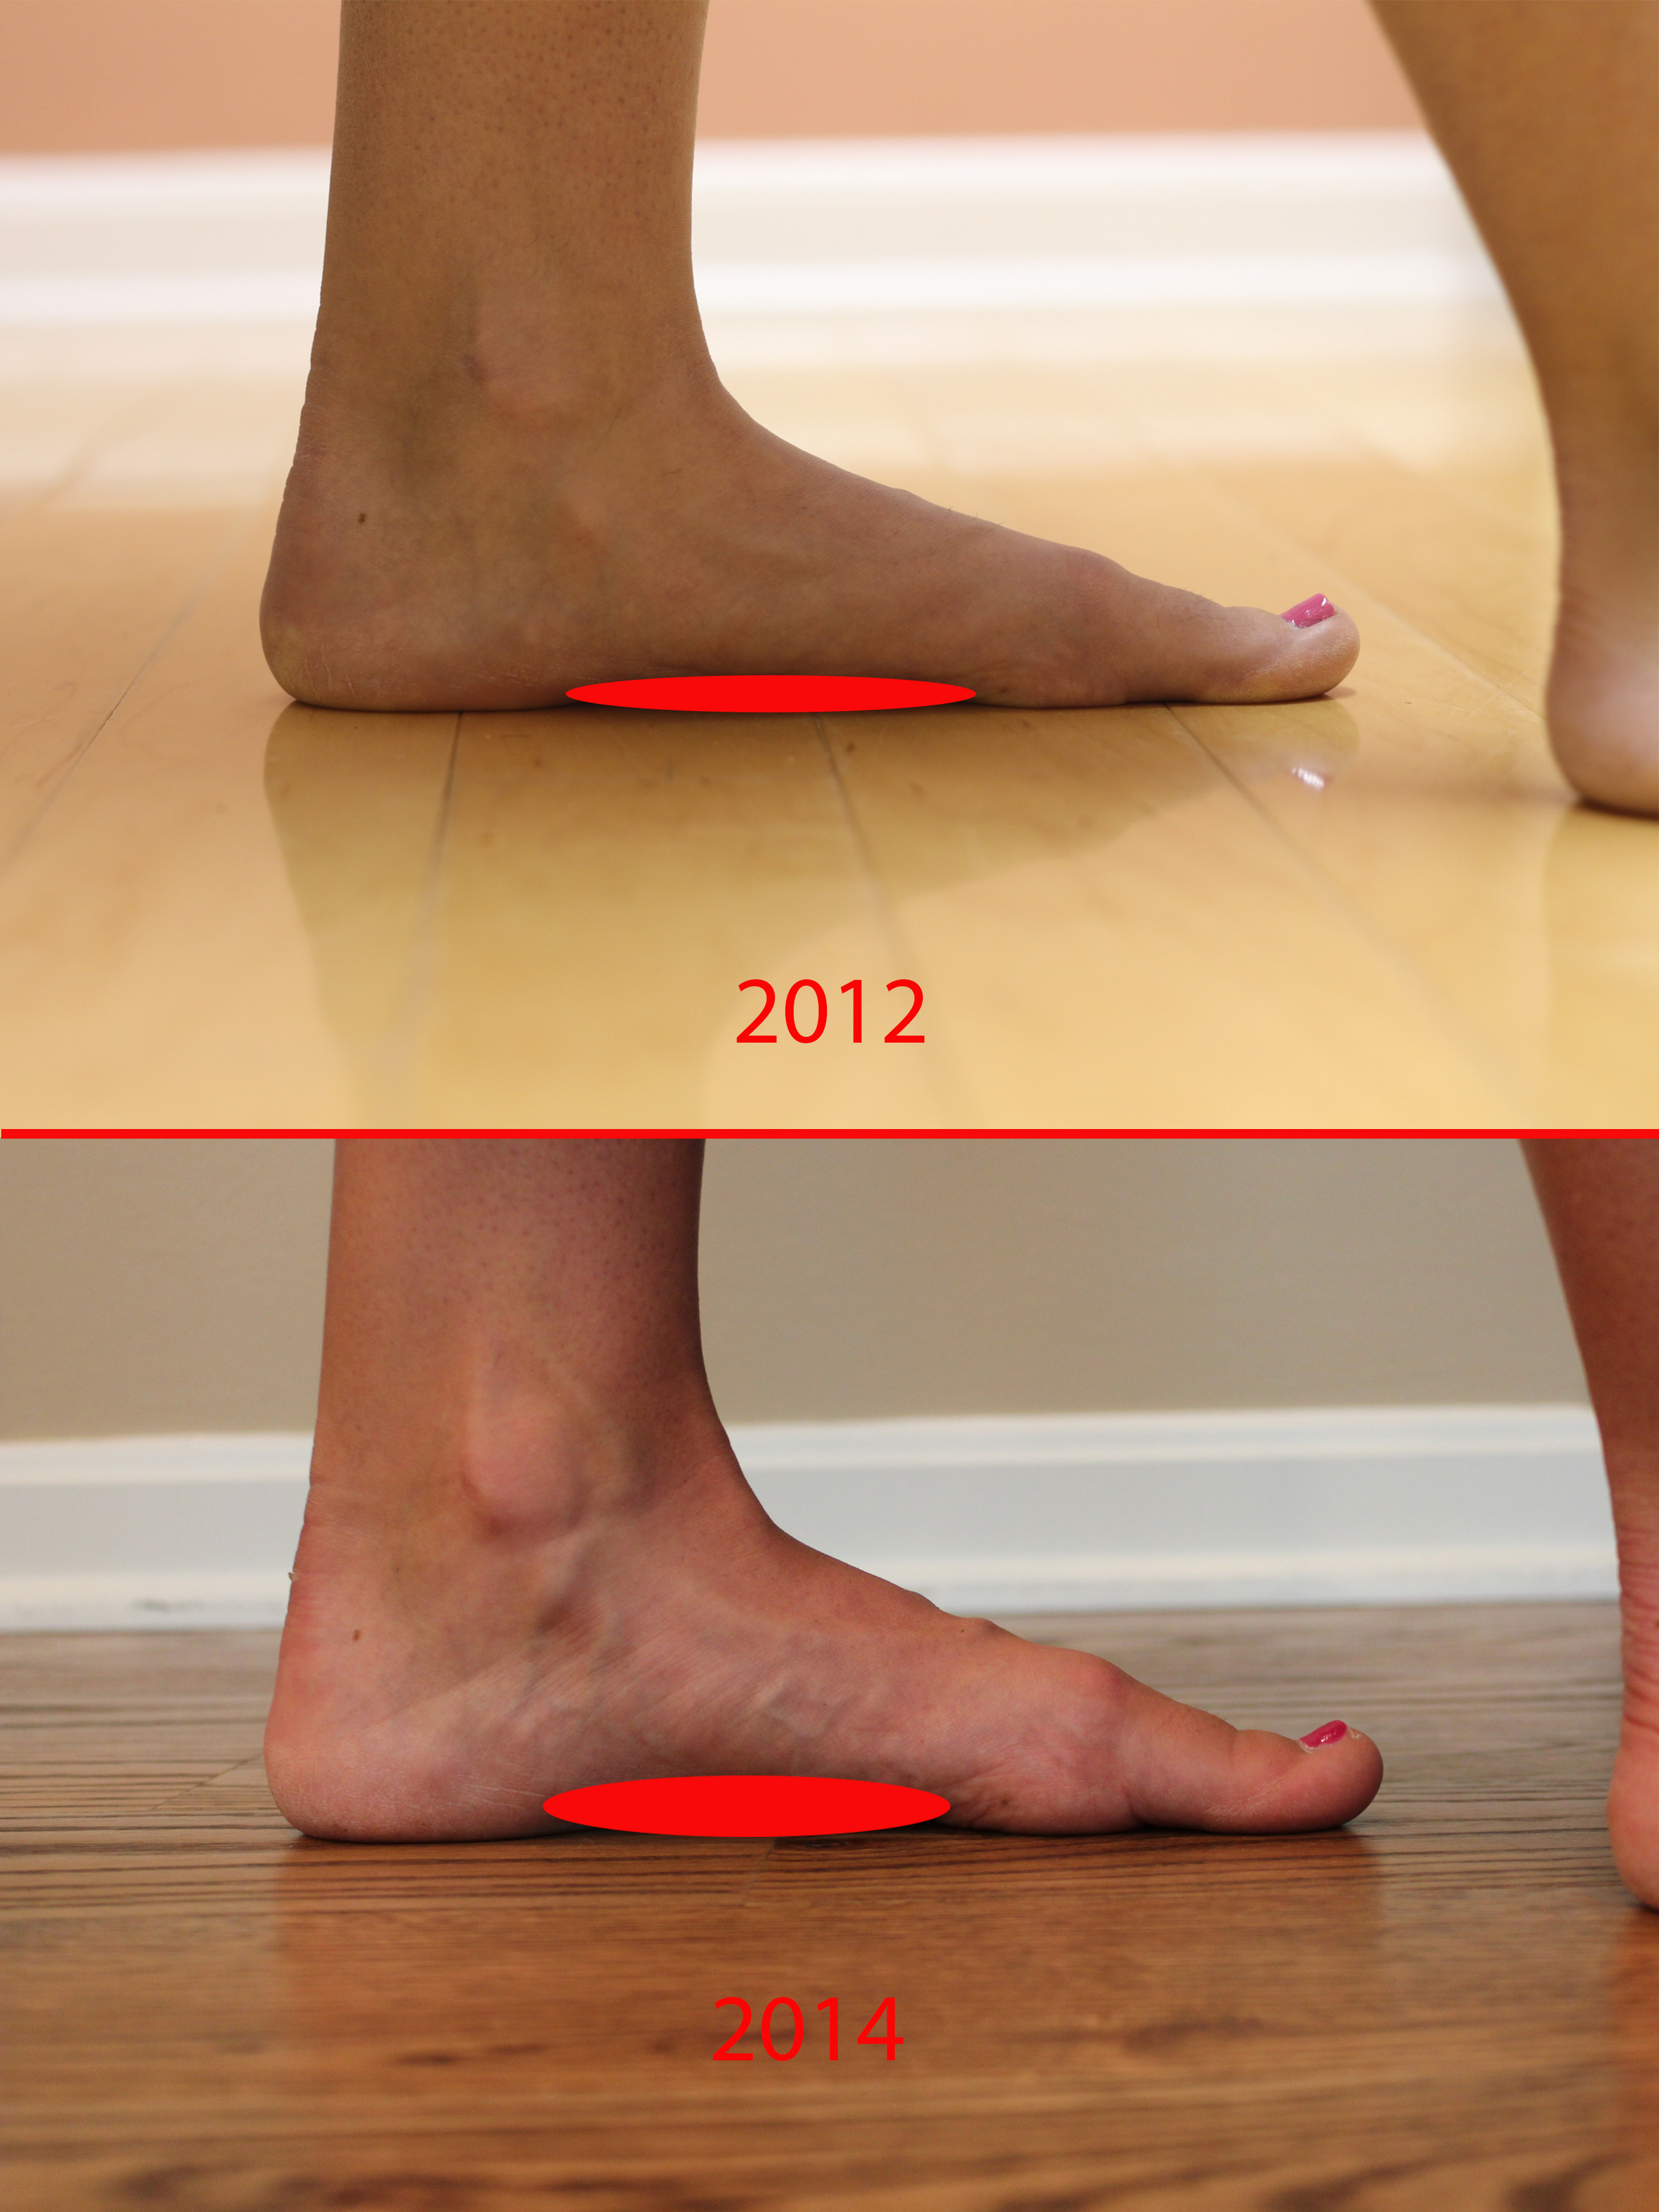 New Images From The Case Study Demonstrating Increase In